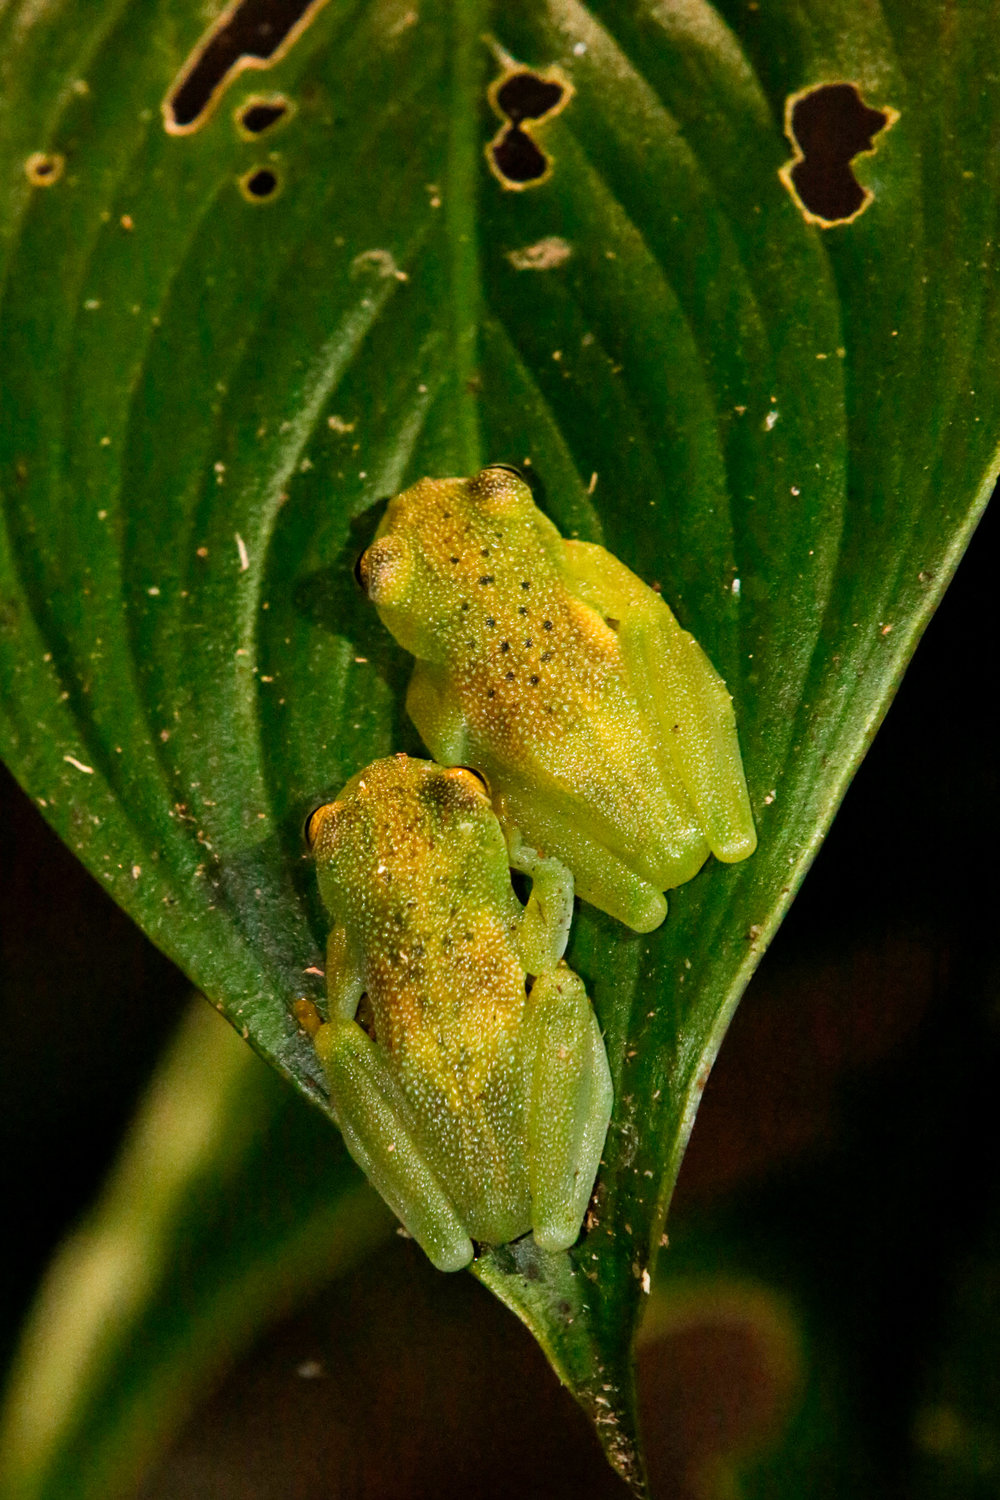 Two Granular Glass Frogs on a Leaf